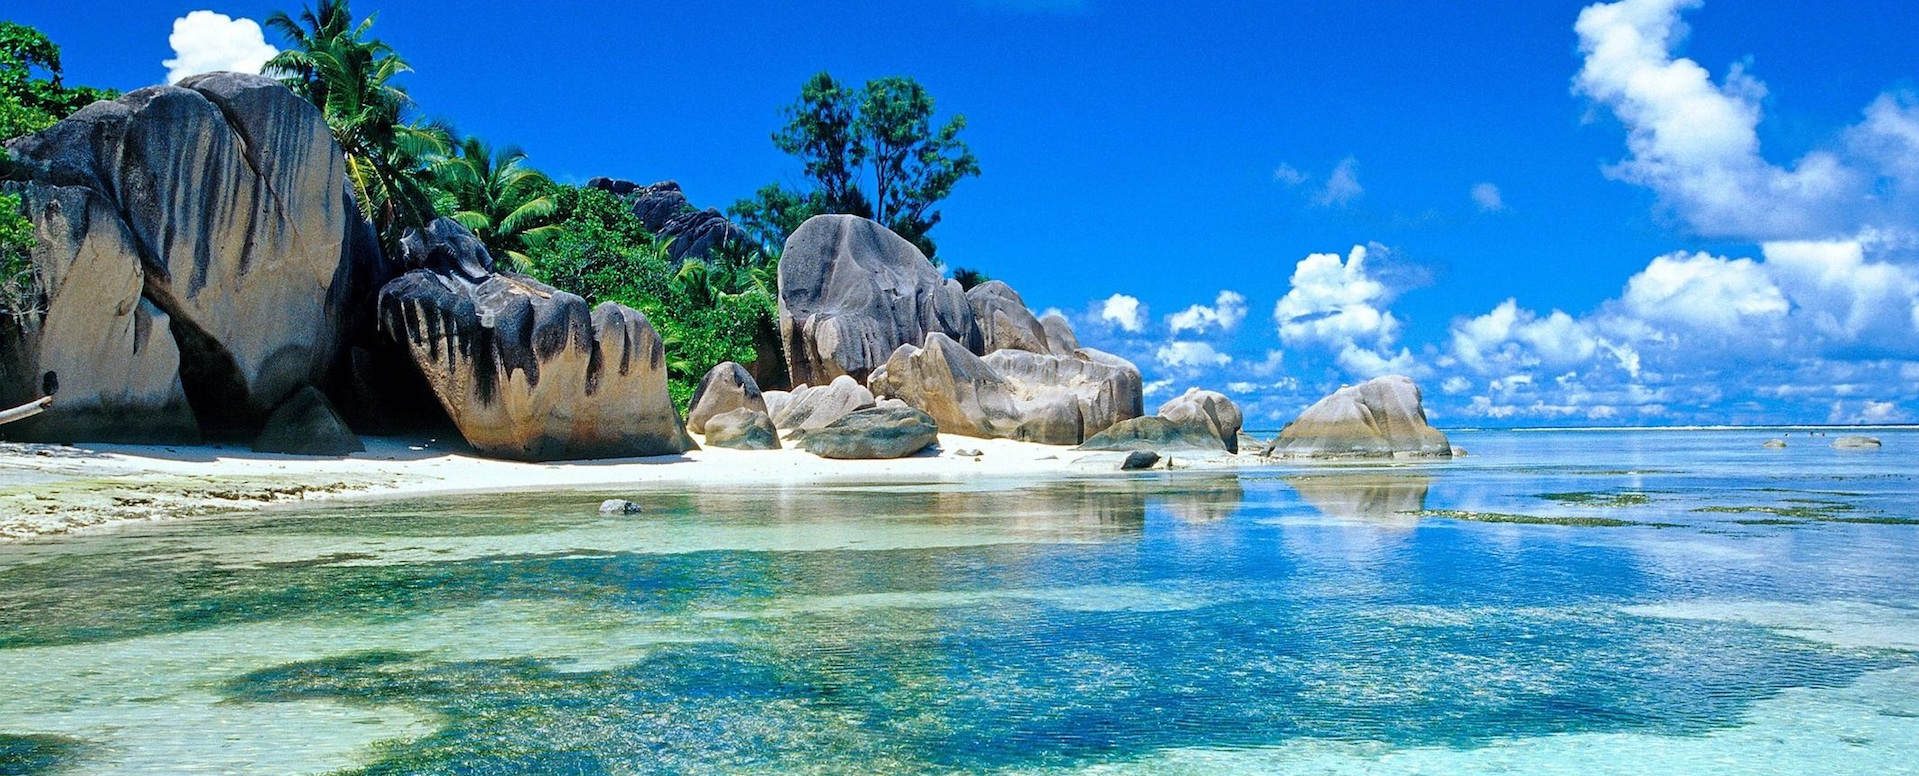 Enjoy the beautiful beaches of the islands - Indonesia